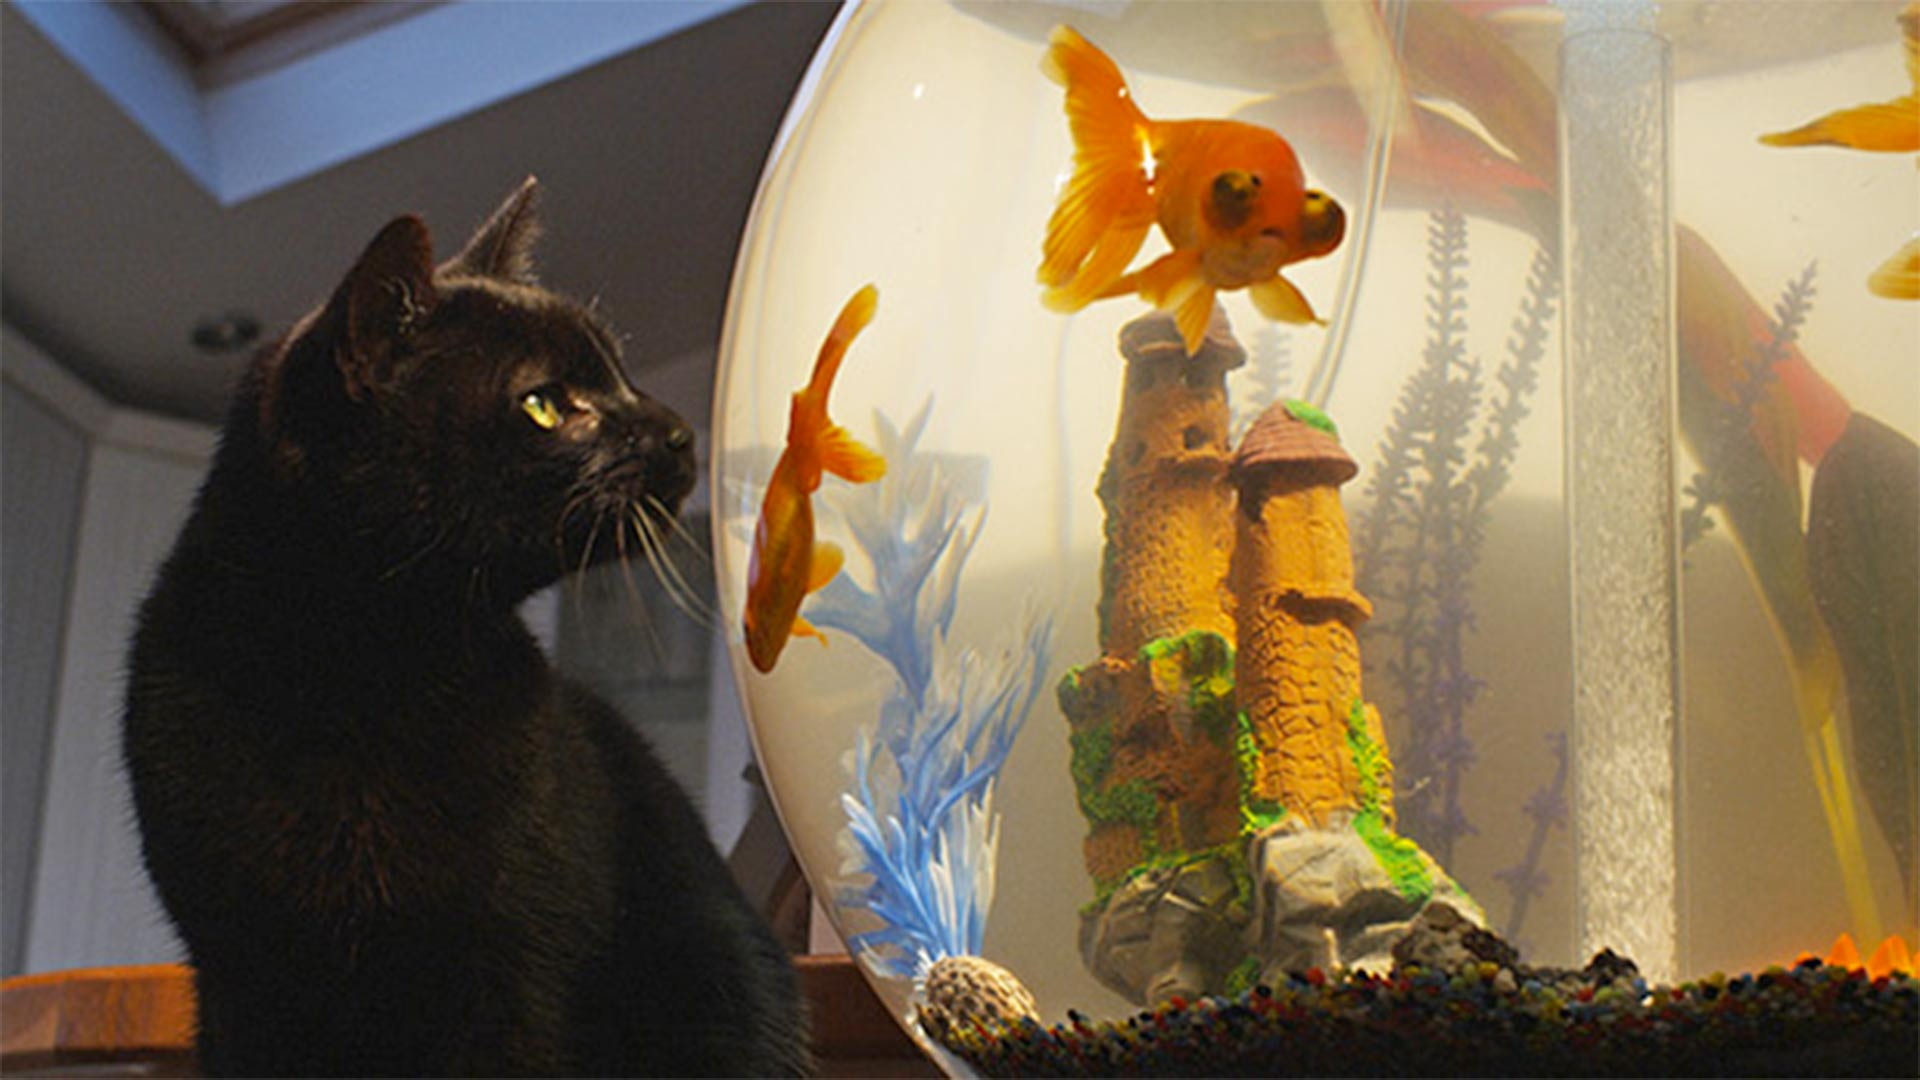 Black cat looking at goldfish in a tank.